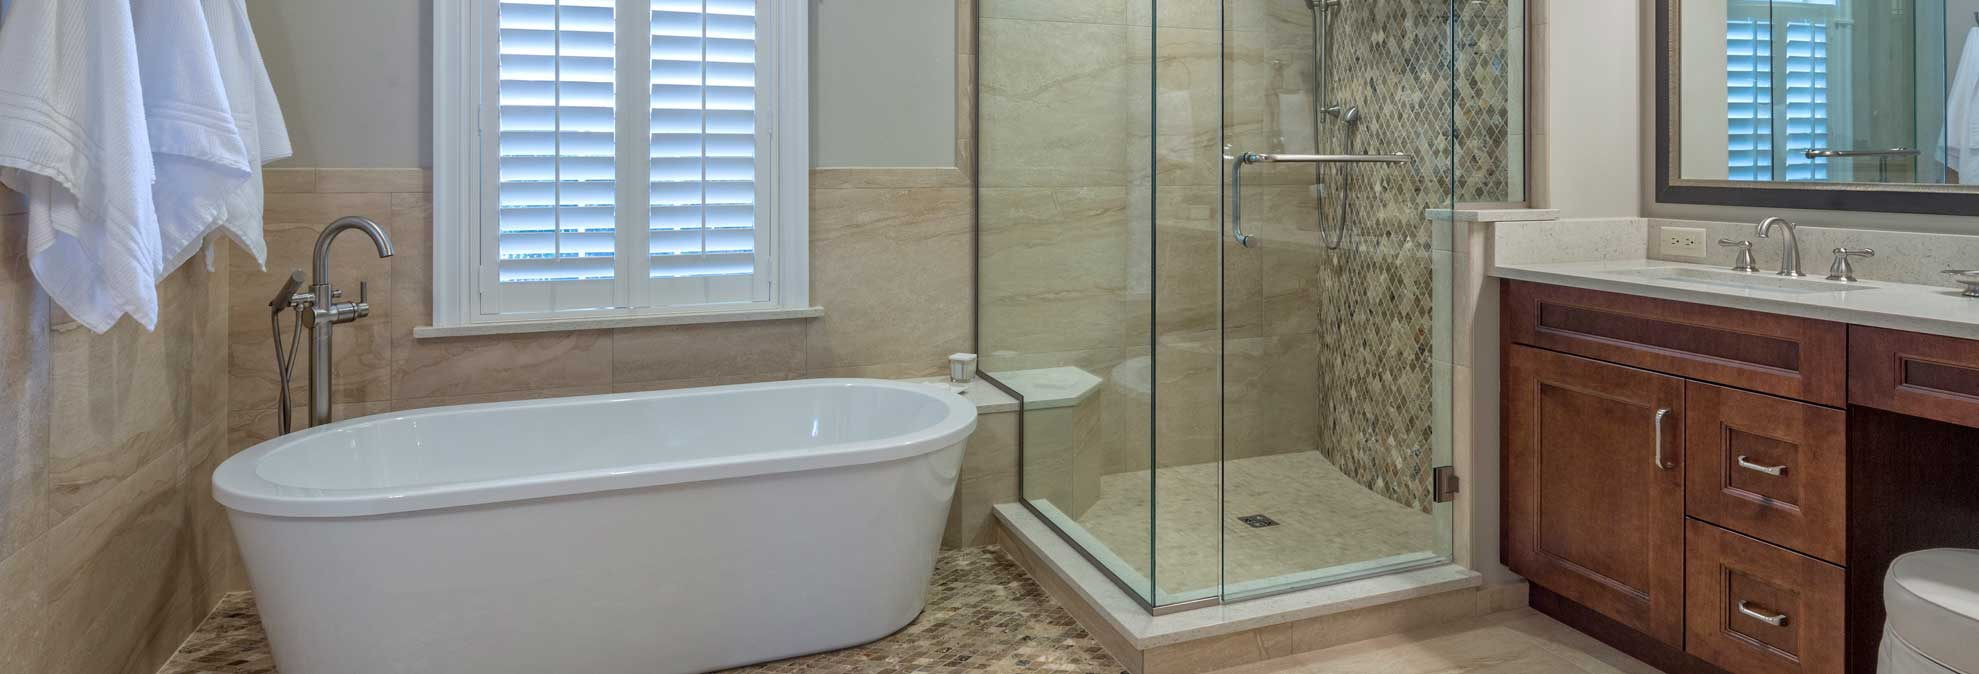 Cleaning Tips To Make Your Bathroom Sparkle Consumer Reports